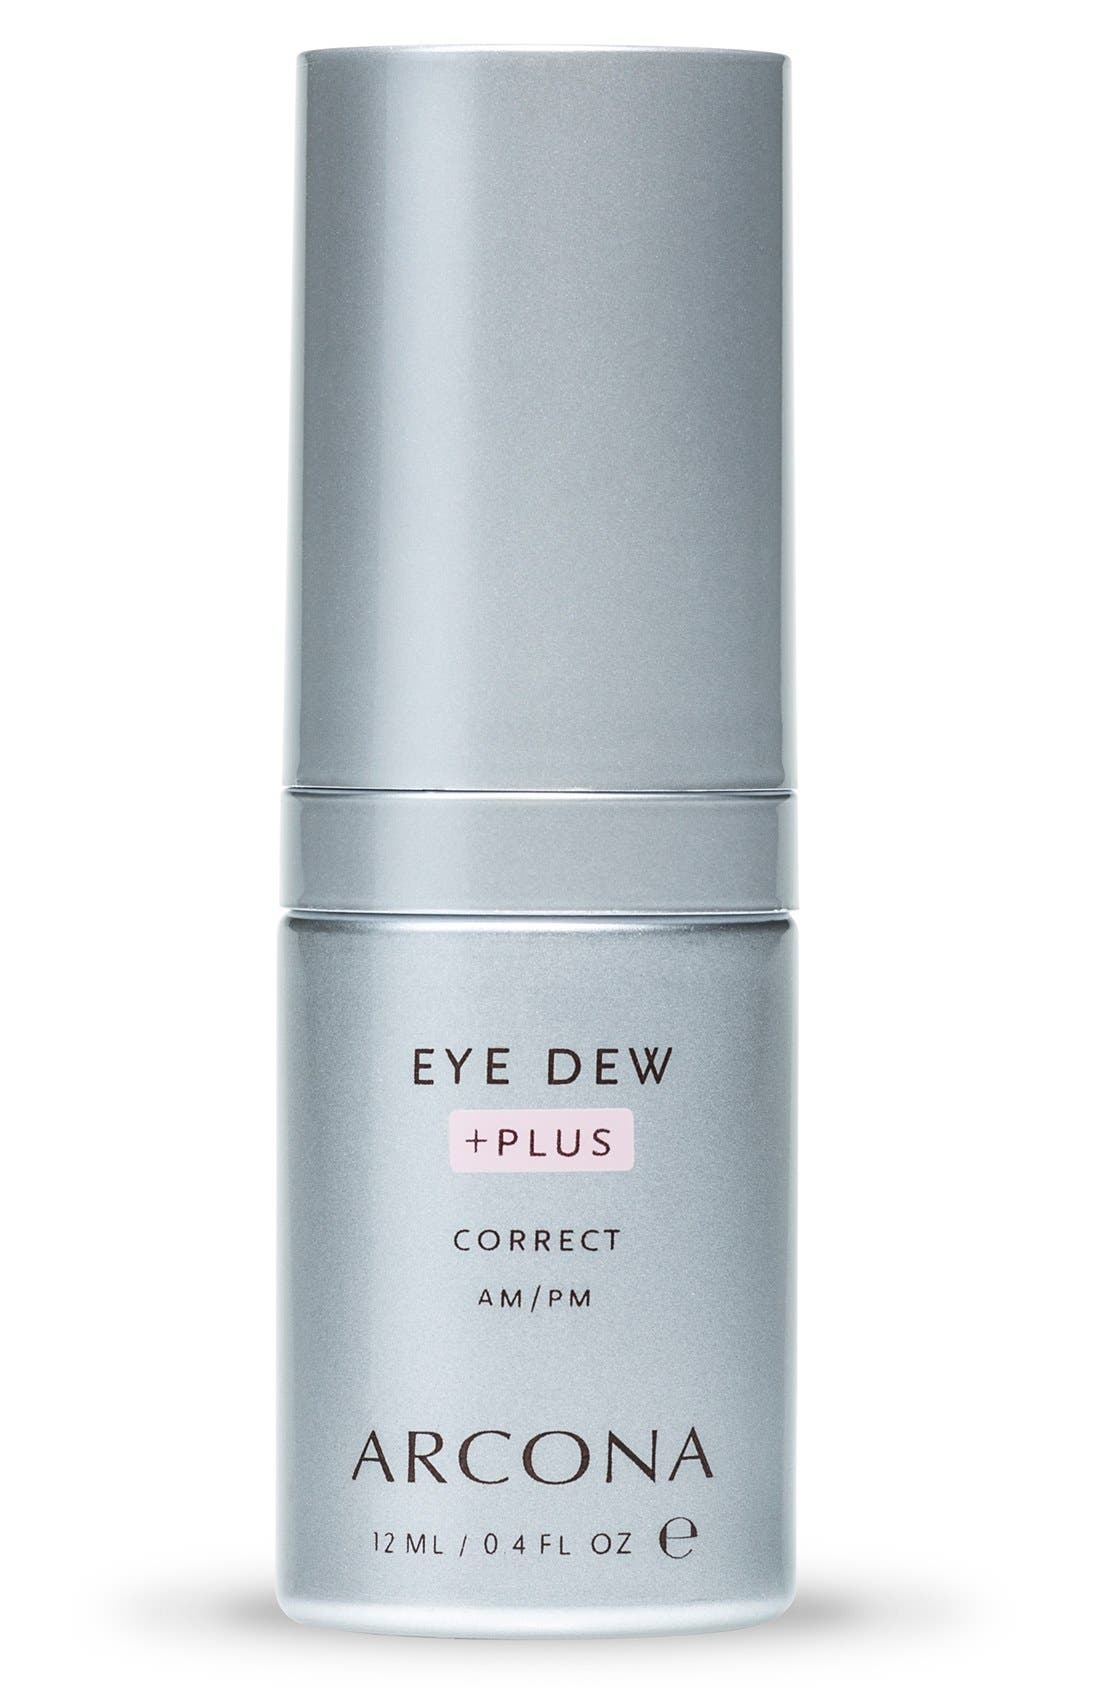 ARCONA Eye Dew Plus Anti-Aging Formula